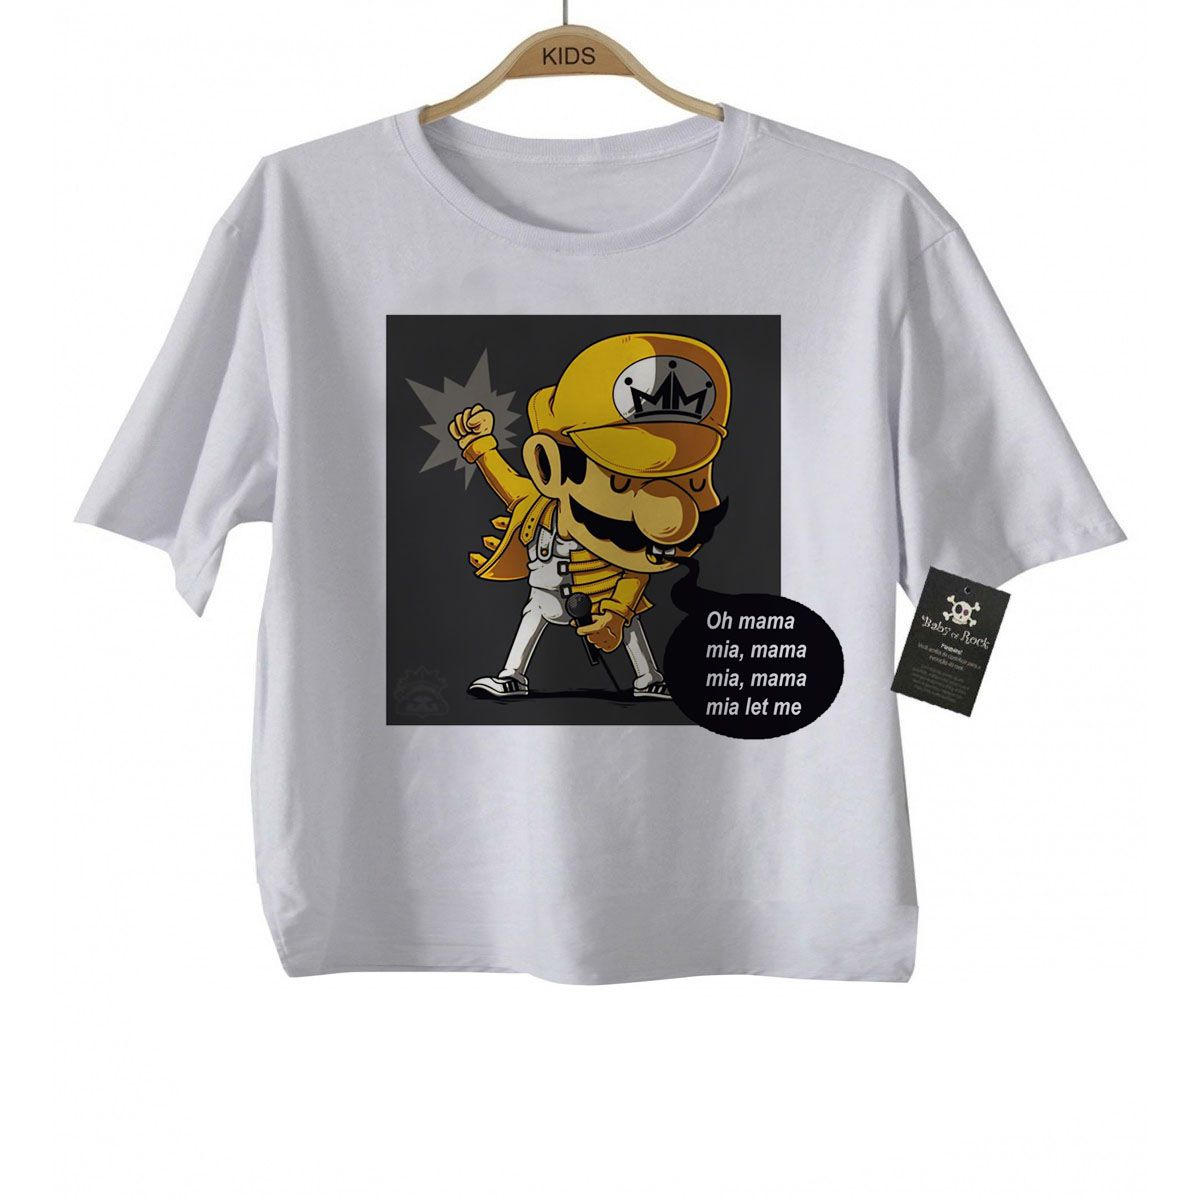 Camiseta Infantil  Mário Freddy Mercury Queen  - Caricato - White  - Baby Monster S/A